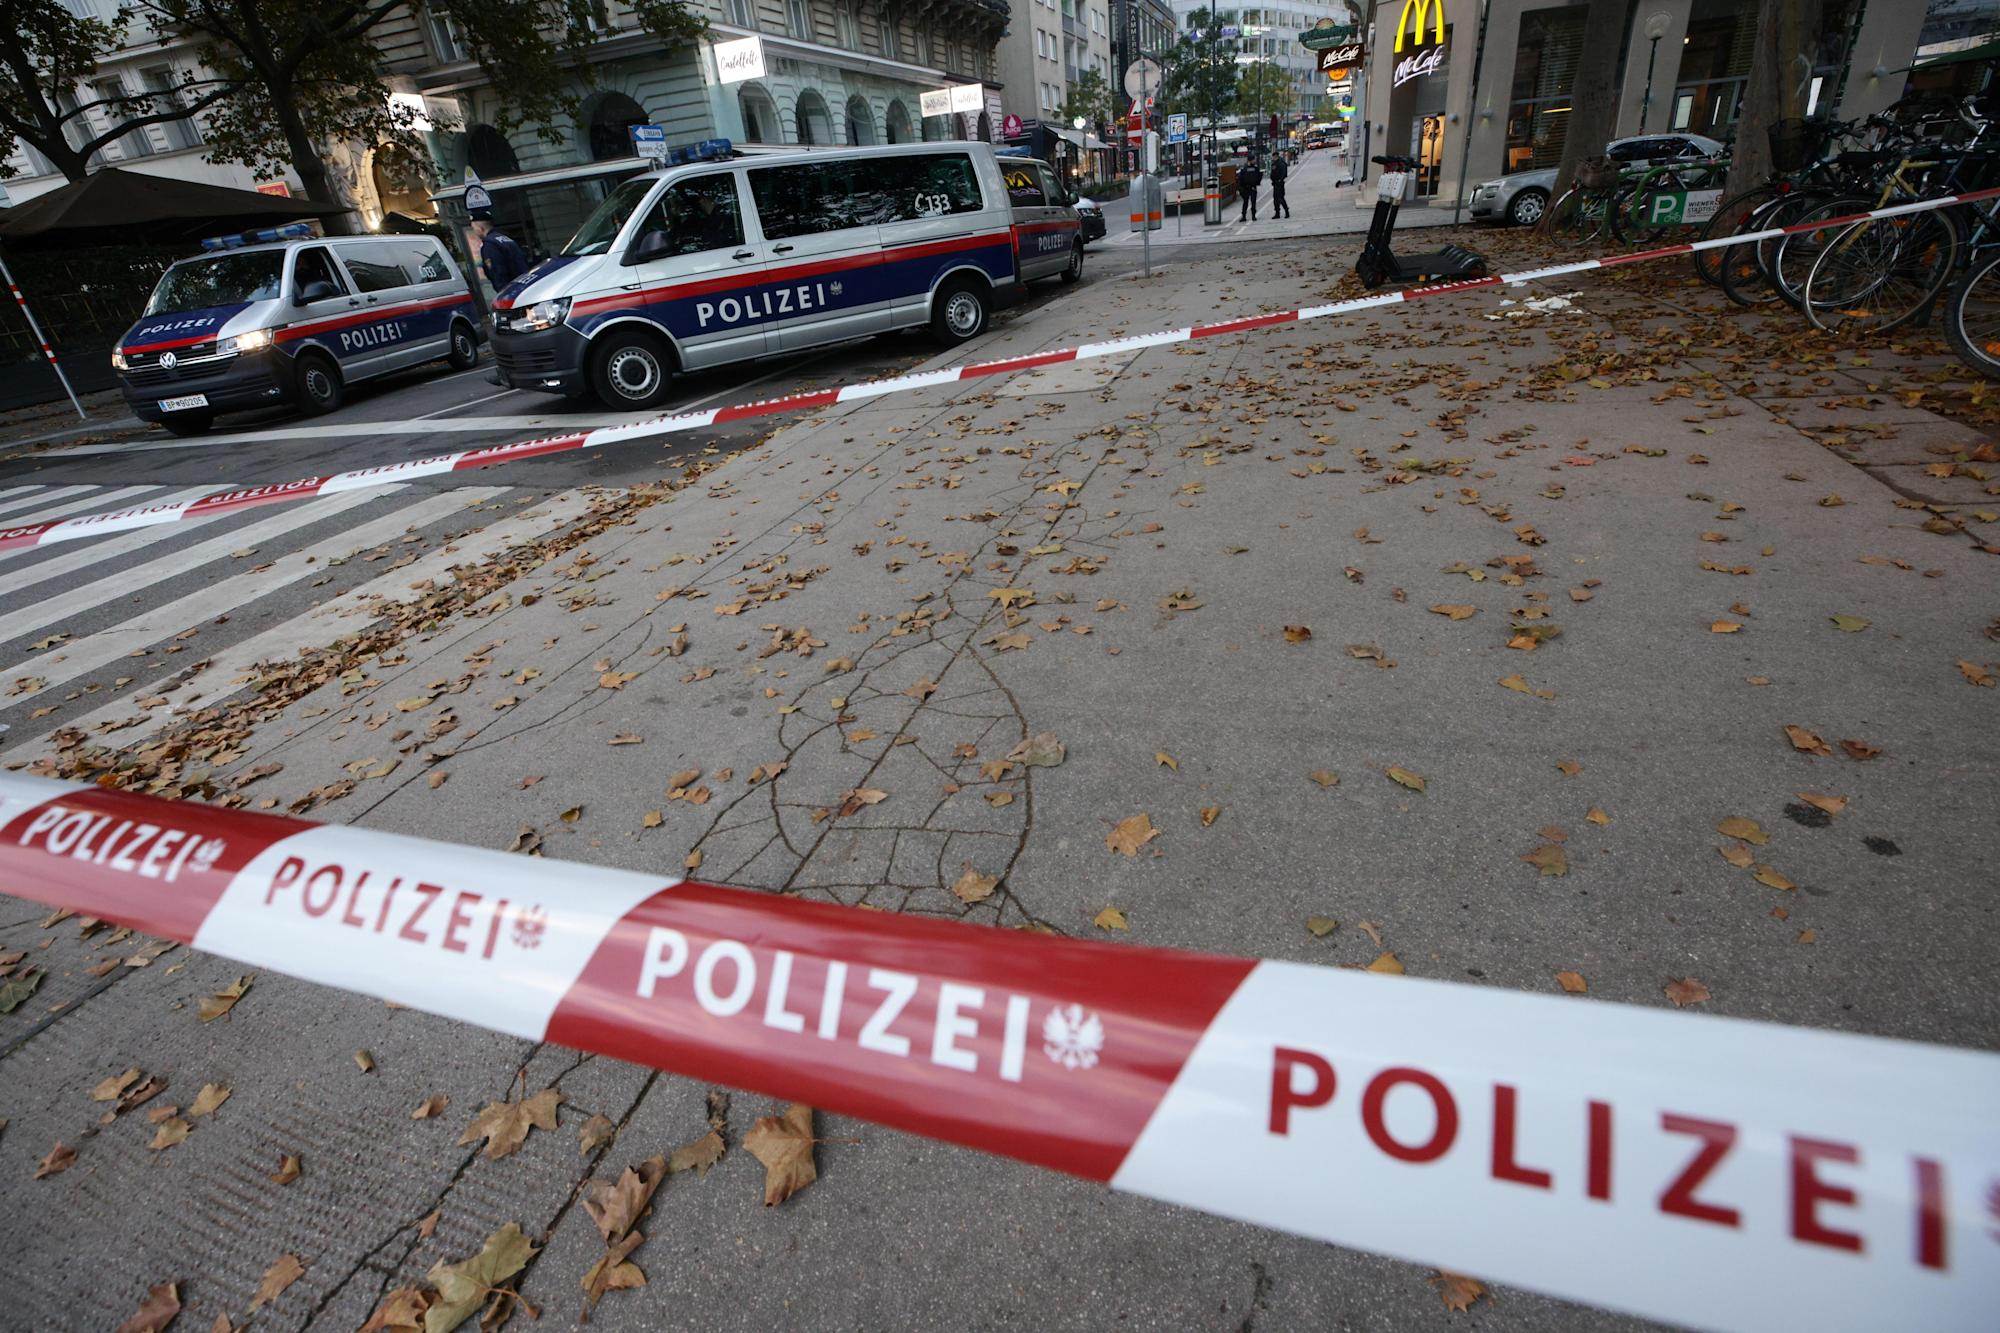 Massive manhunt after Vienna terror attack leaves several dead